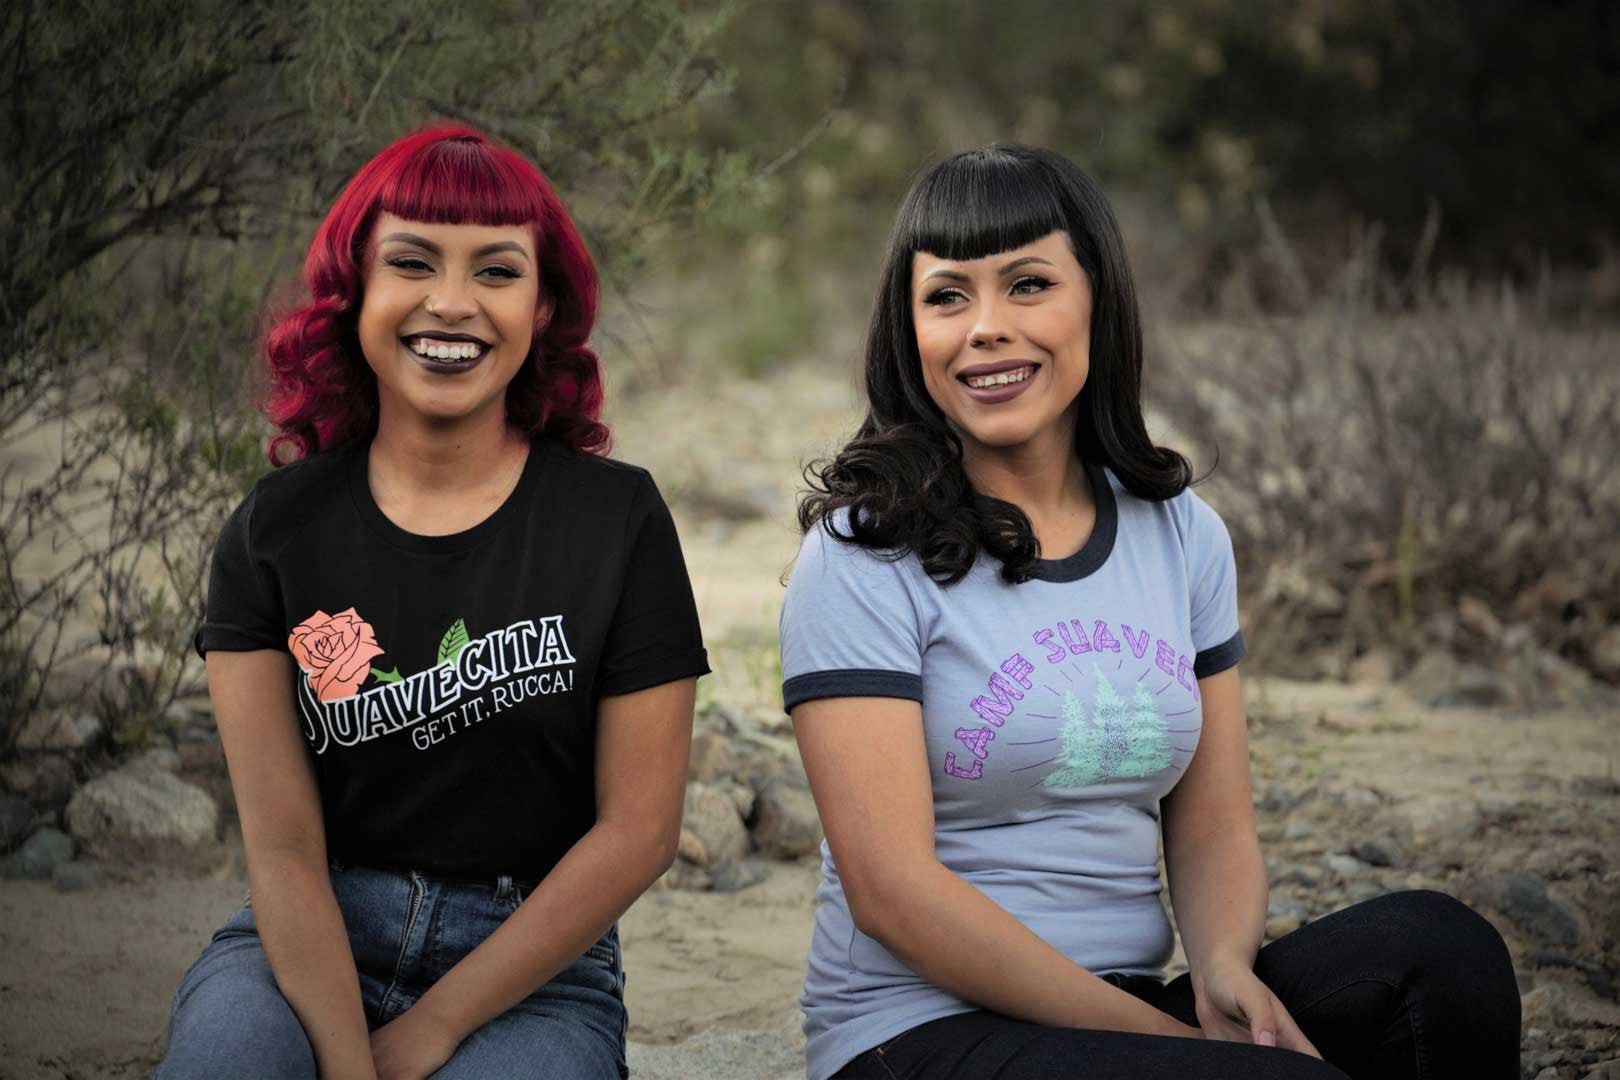 Look at these very beautiful suavecita pomade ladies